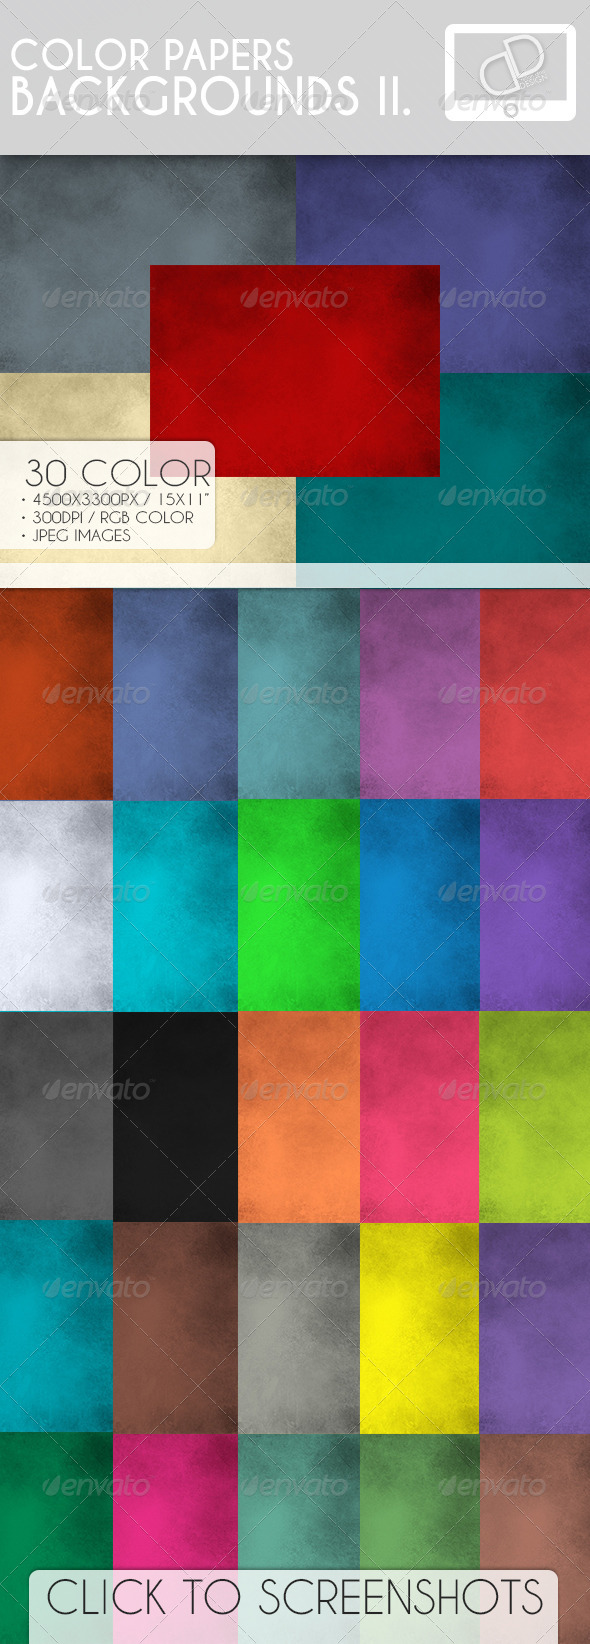 Color Paper Backgrounds II